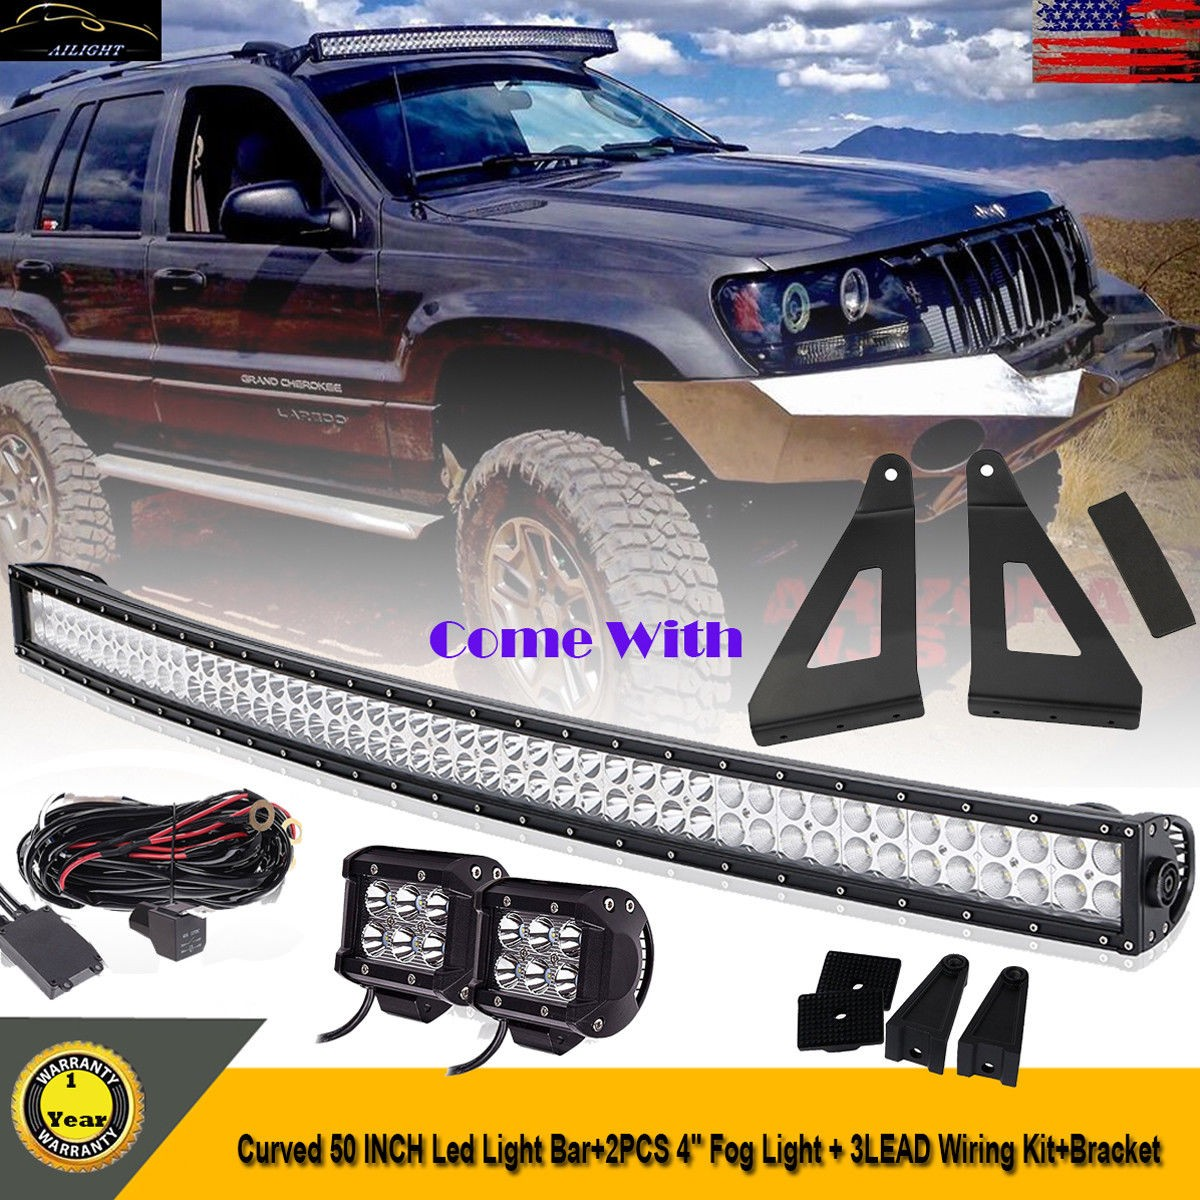 Jeep Comanche Tail Light Wiring Schematic Diagrams Rampage Tailgate Bar Wire Diagram Wrangler Lights